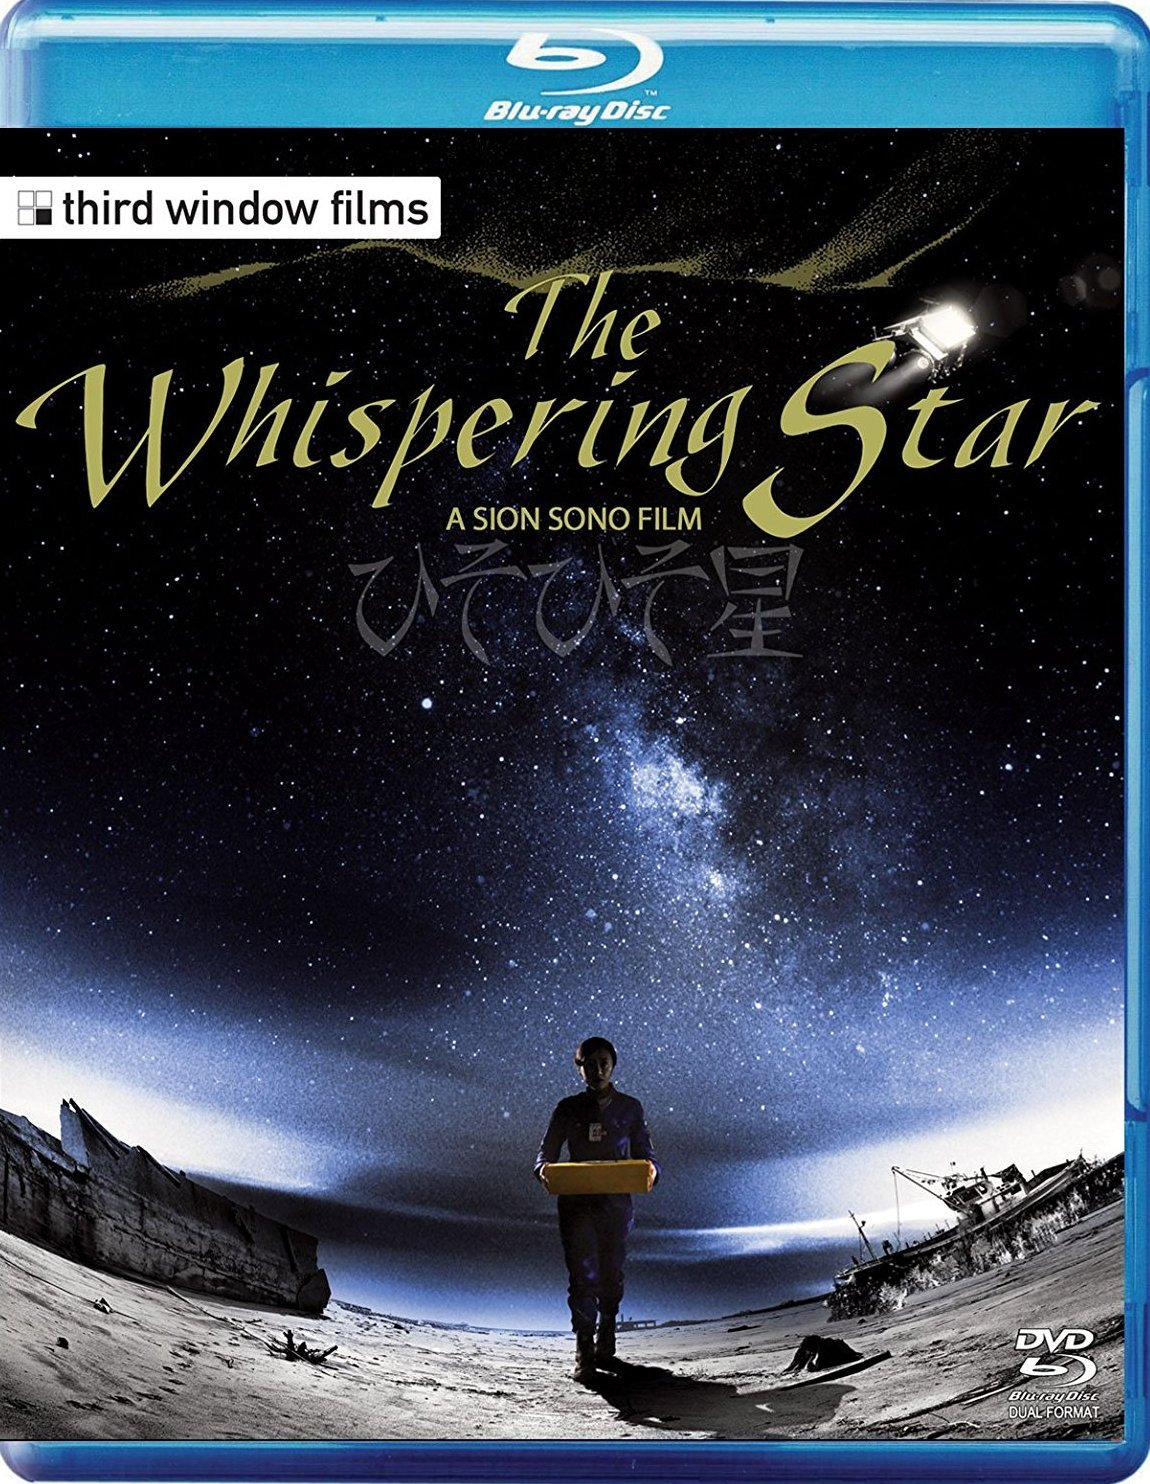 The Whispering Star Blu-ray review: Sion Sono's artfully elegant spin on memory and mortality